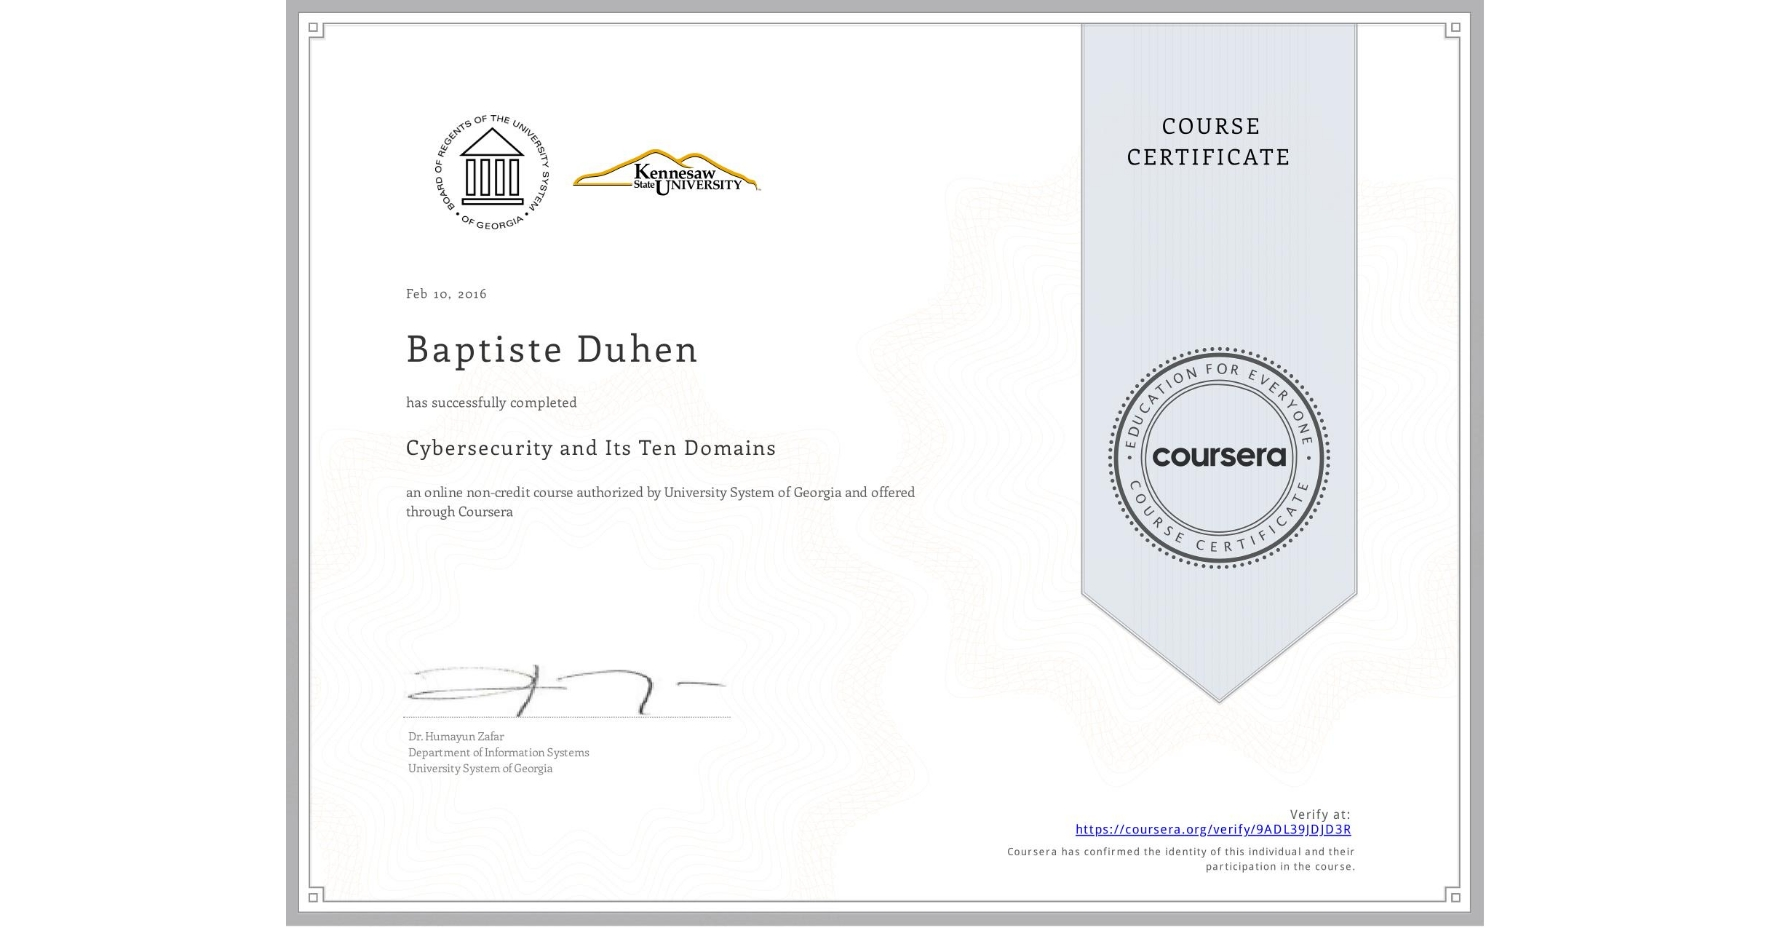 View certificate for Baptiste Duhen, Cybersecurity and Its Ten Domains, an online non-credit course authorized by University System of Georgia and offered through Coursera